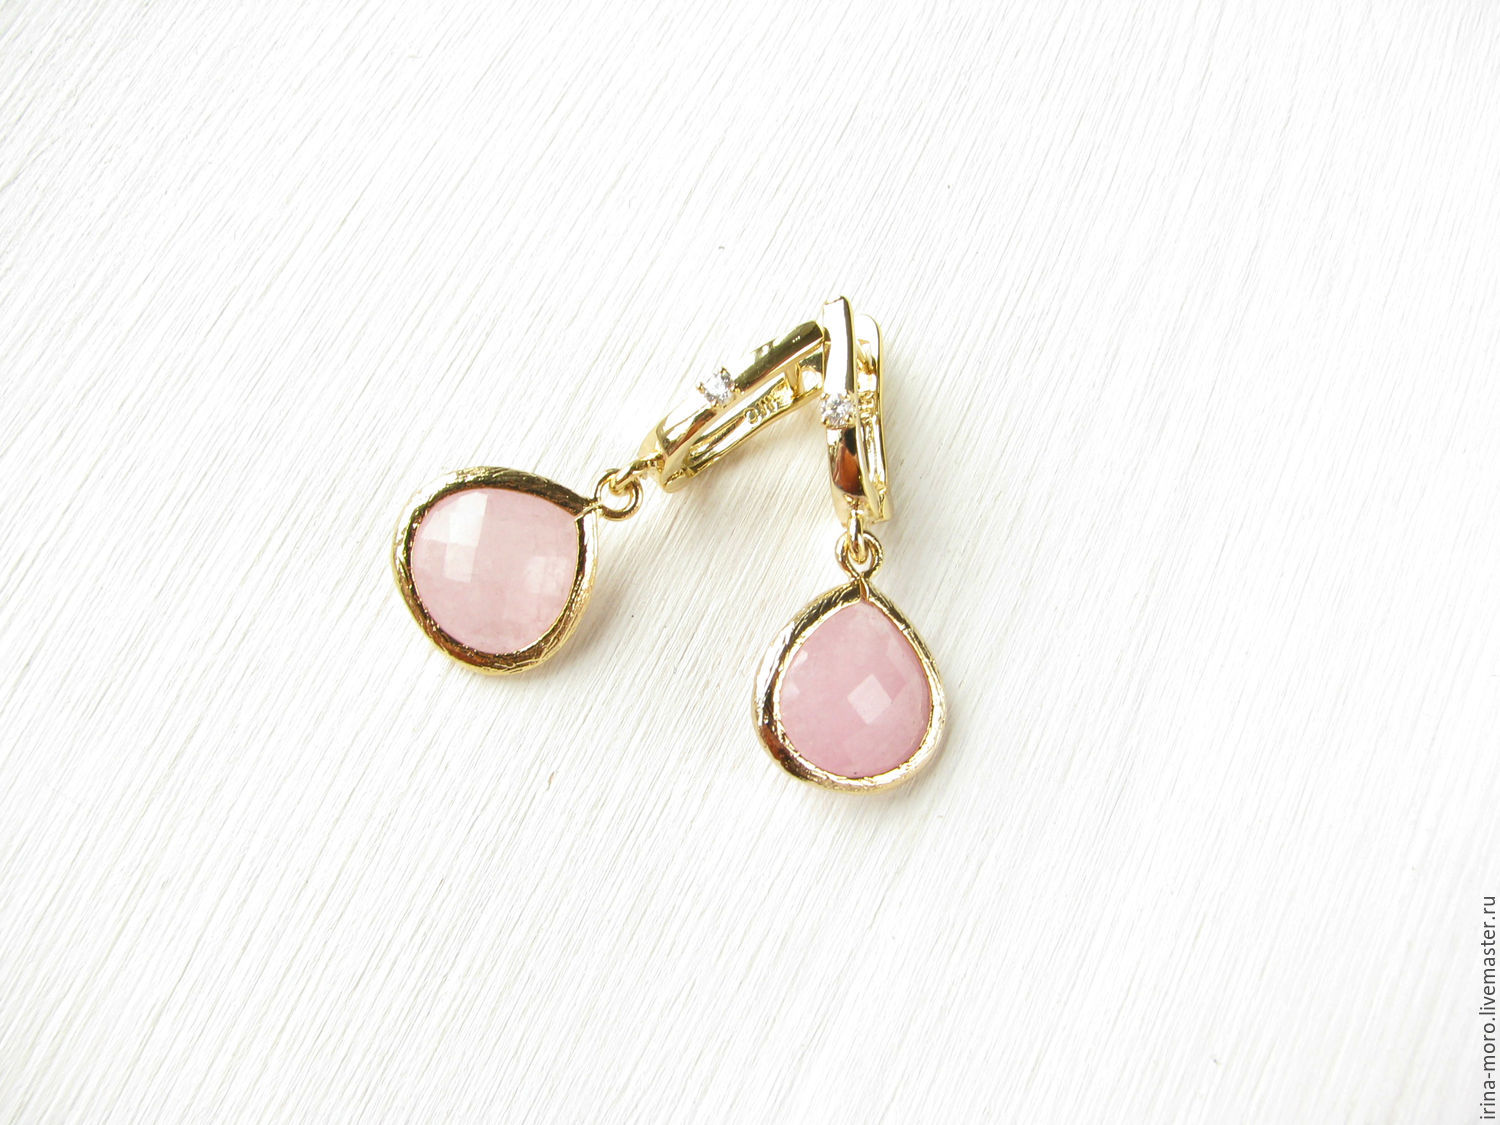 Irina Moro. 